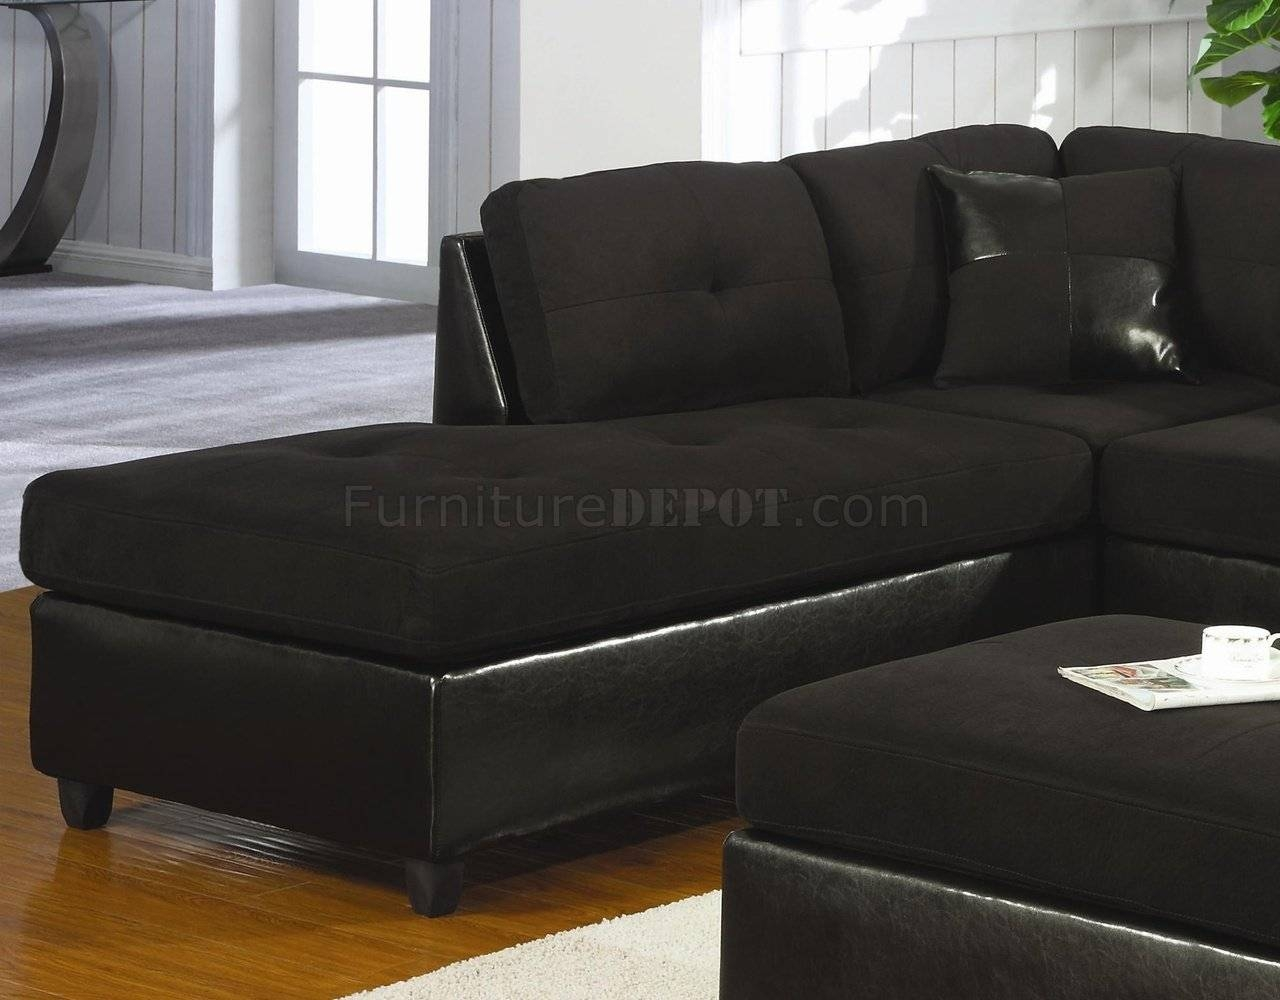 Microfiber & Faux Leather Contemporary Sectional Sofa 500735 Black pertaining to Microsuede Sectional Sofas (Image 15 of 30)